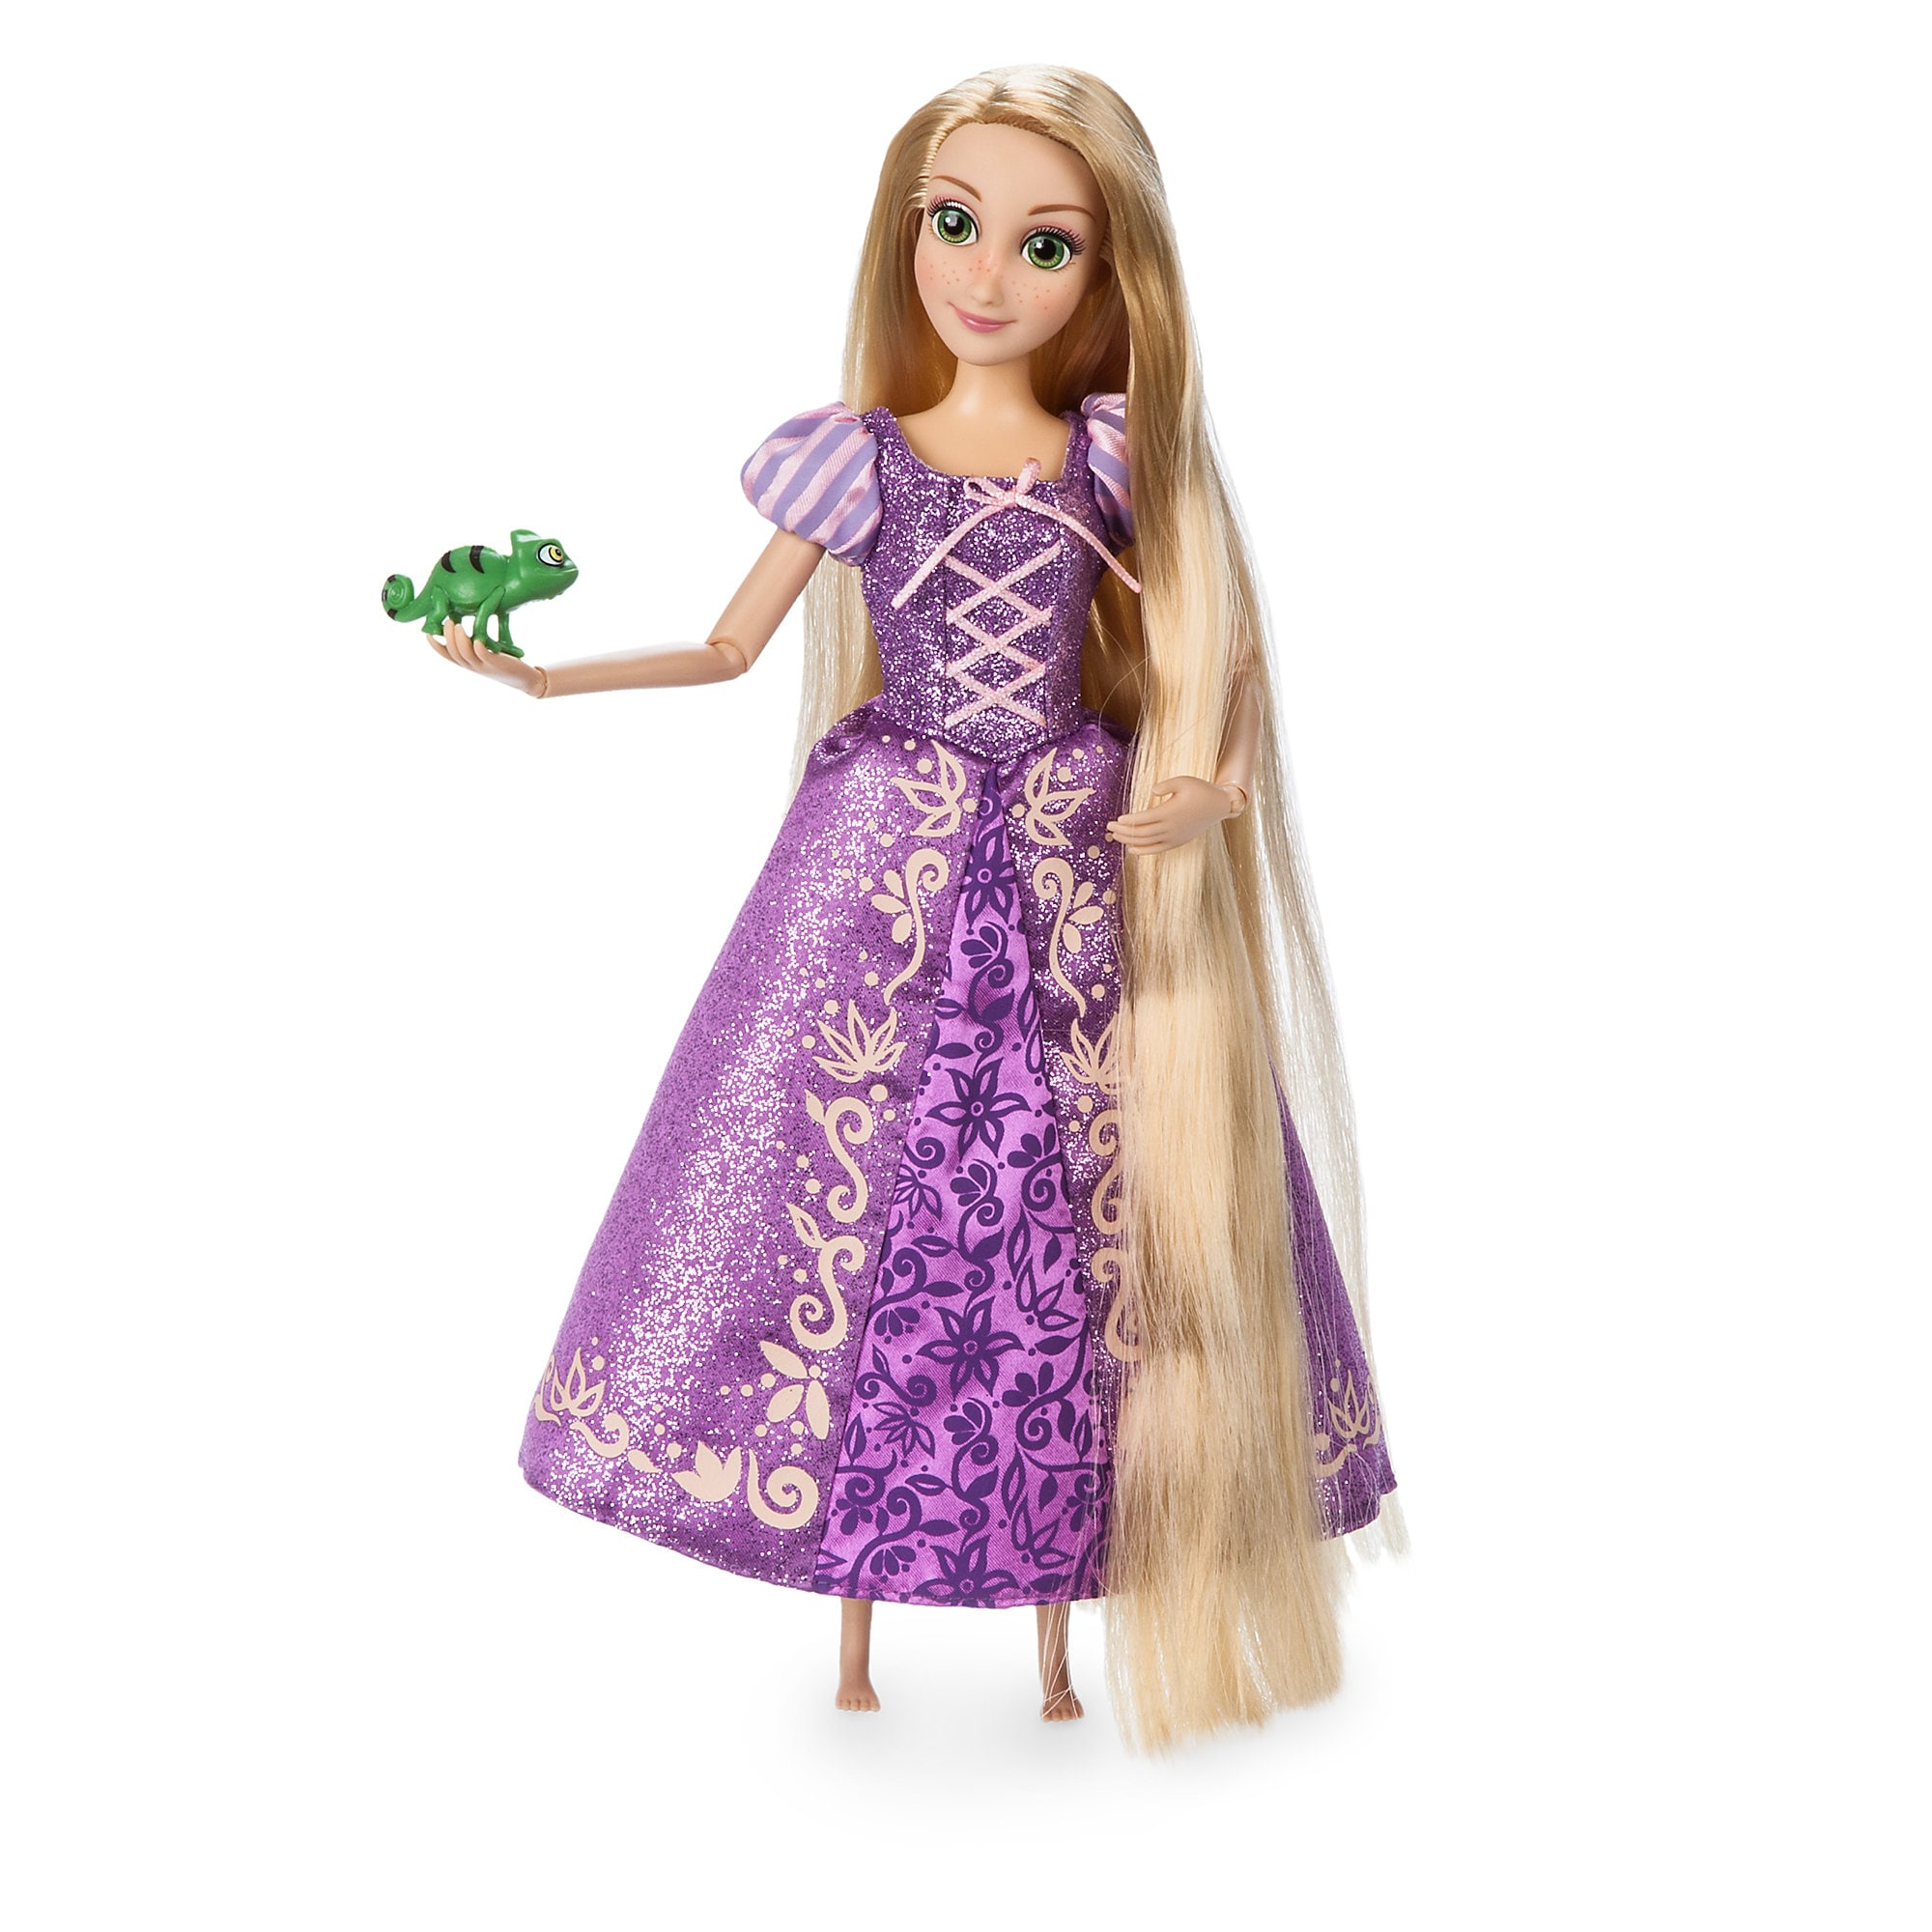 Rapunzel Classic Doll with Pascal Figure - 11 1/2''